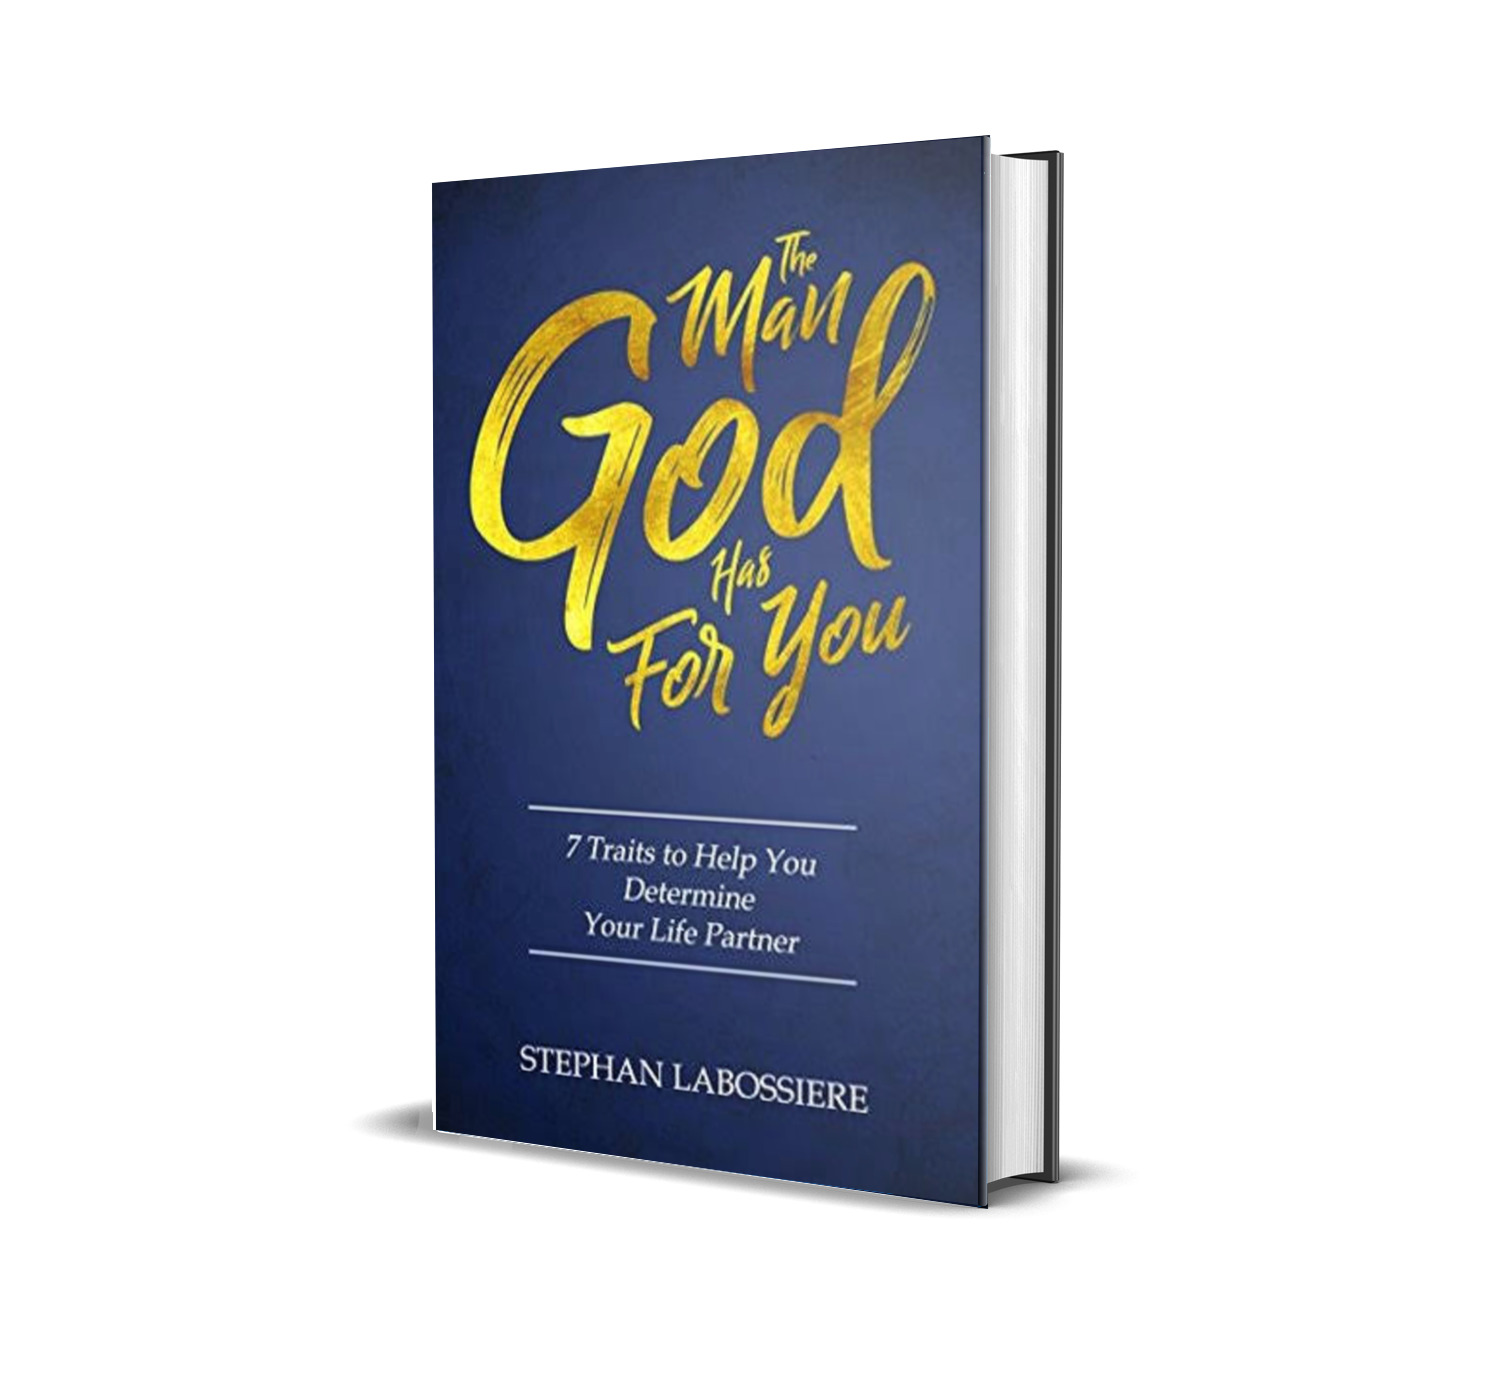 The man God has for you- Stephan Labossiere